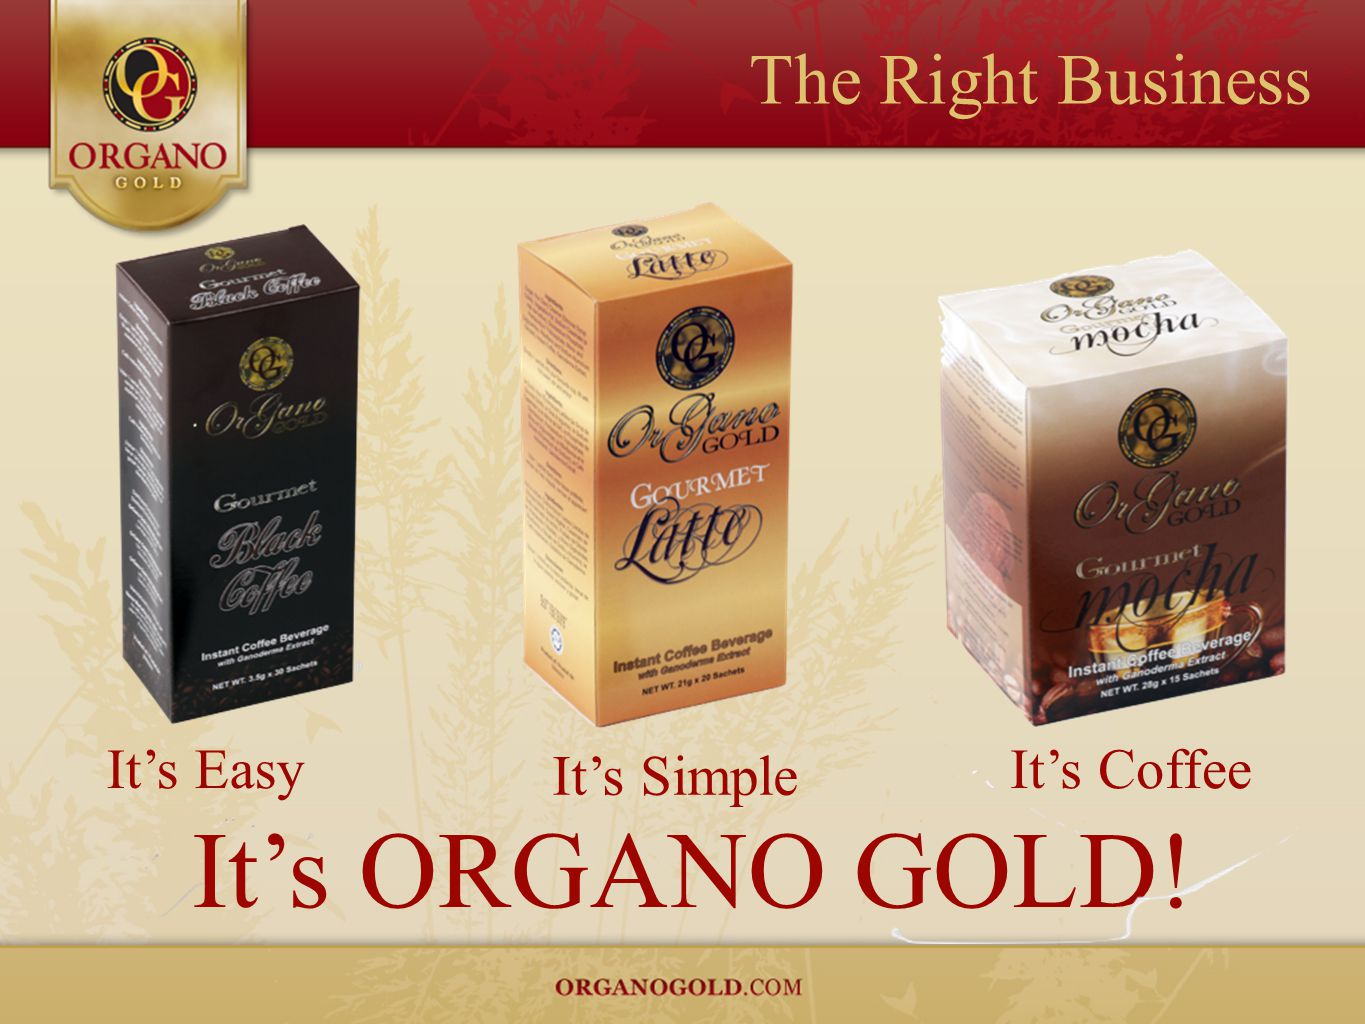 The Right Business It's EasyIt's Coffee It's Simple It's ORGANO GOLD!